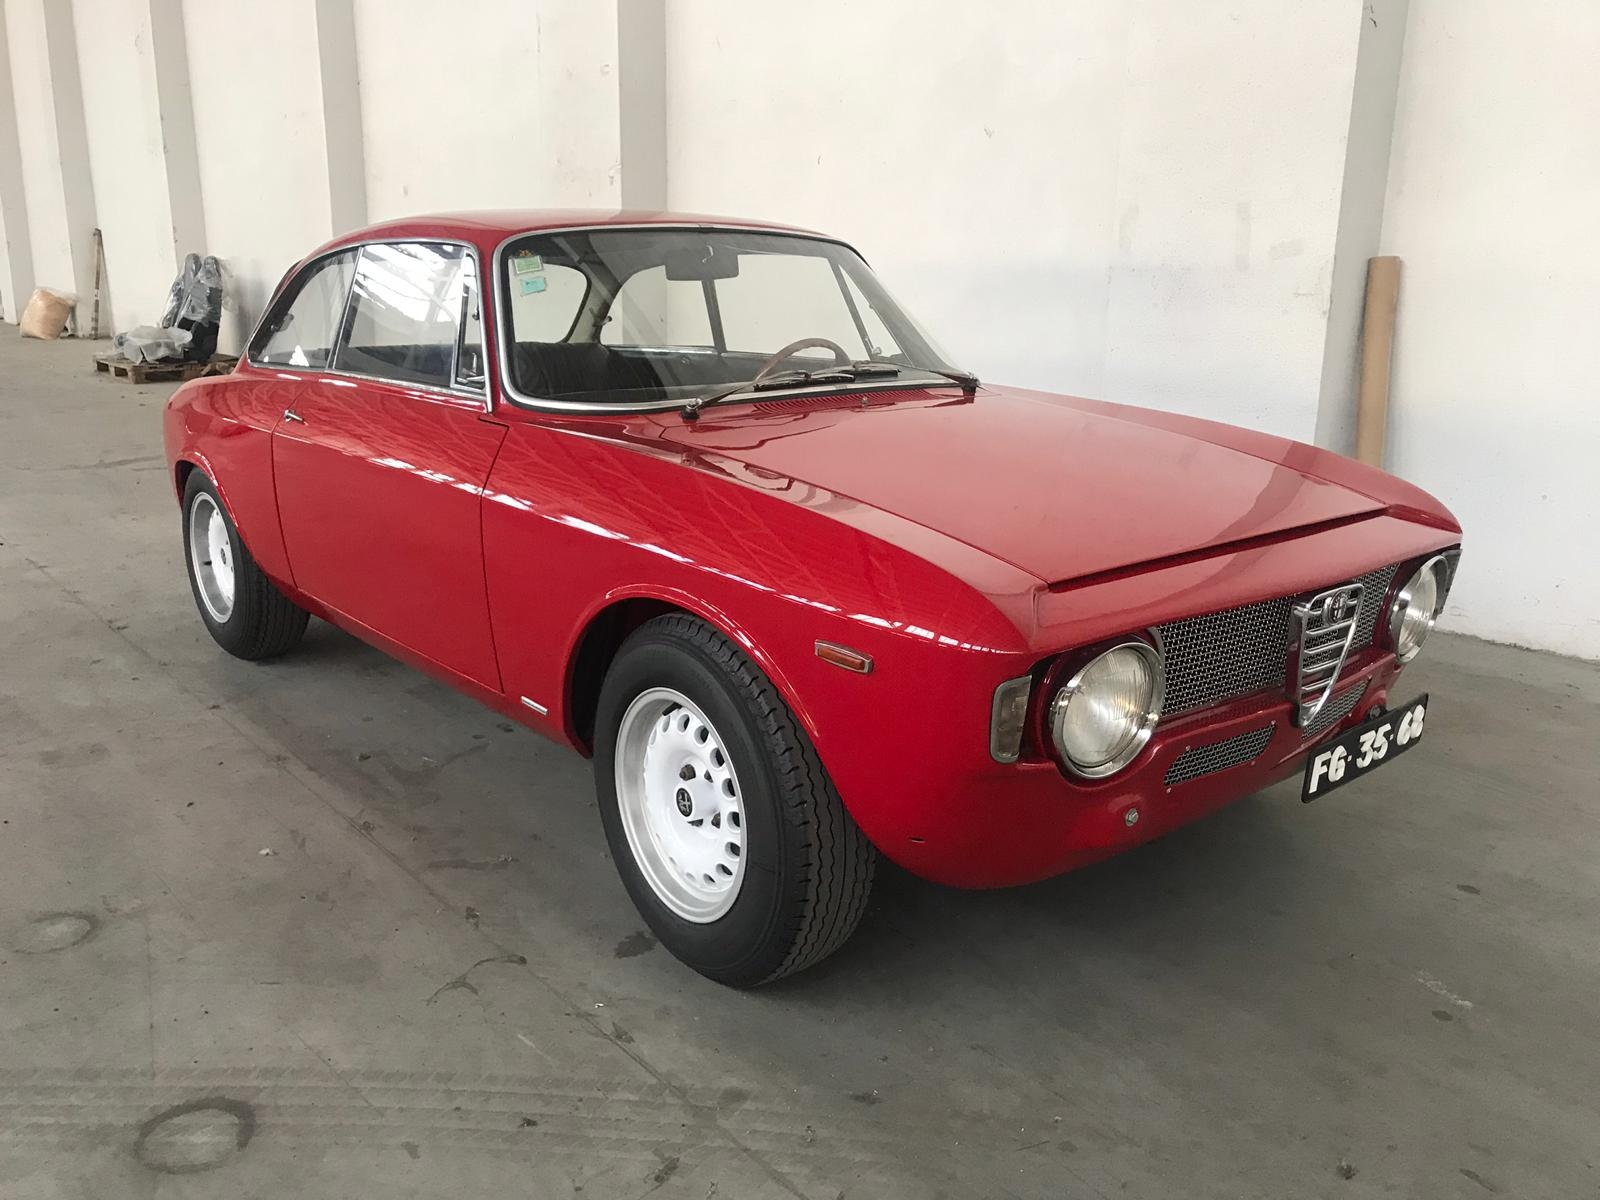 1966 Alfa Romeo Gta Vintage Car For Sale